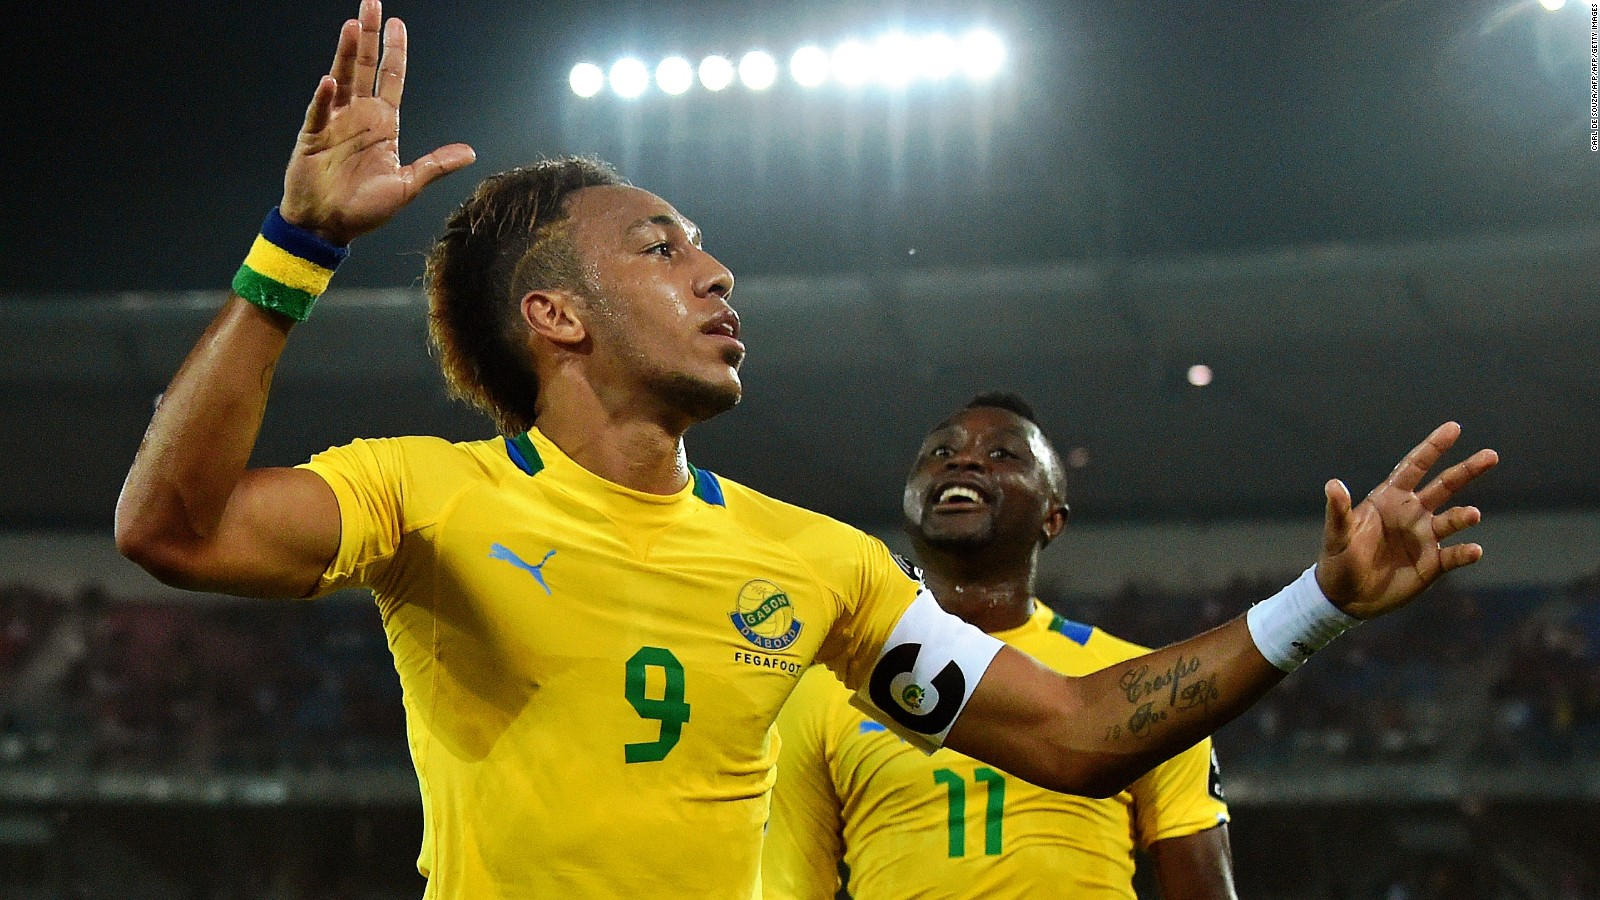 Pierre Emerick Aubameyang Family ties fuel Africa s star striker